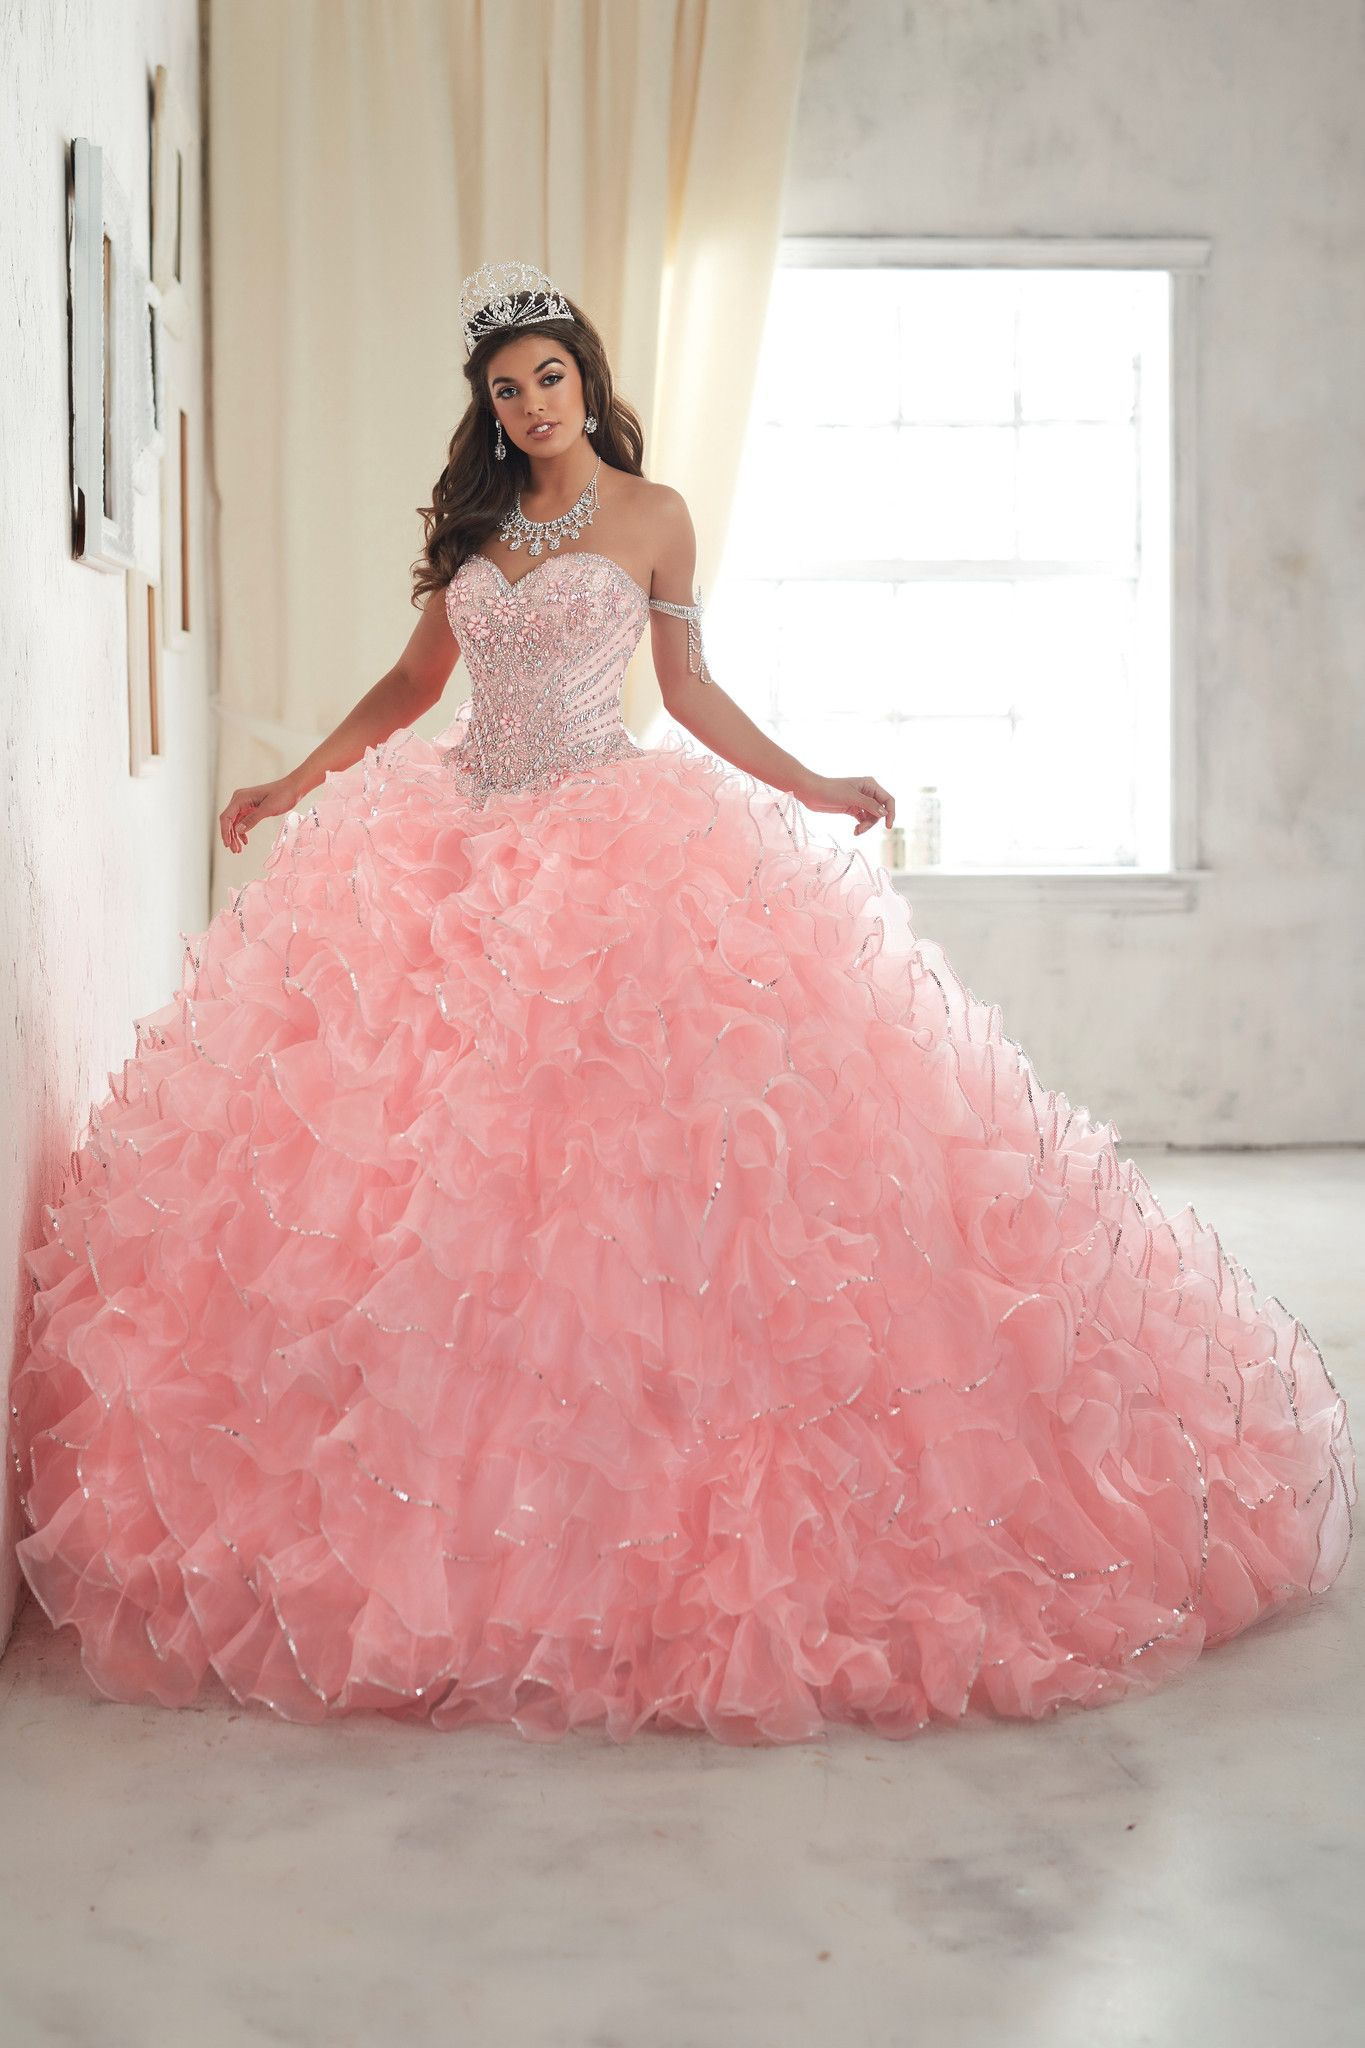 577bd586b91 Look and feel beautiful in a House of Wu Quinceanera Dress Style Number  26845 during your Sweet 15 party or any formal event.